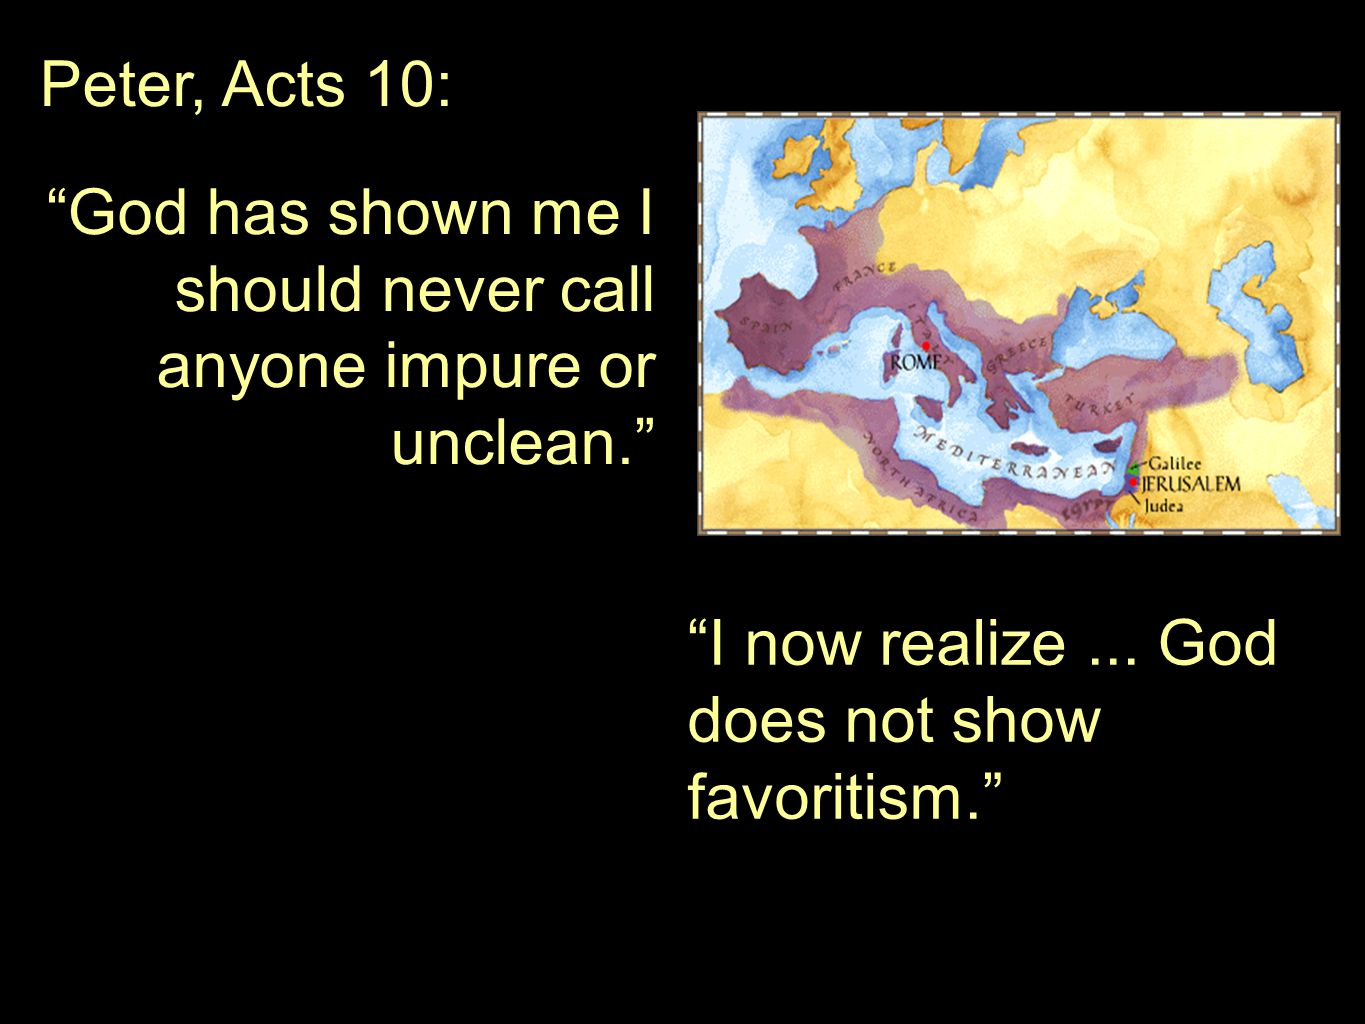 Peter, Acts 10: God has shown me I should never call anyone impure or unclean. I now realize...